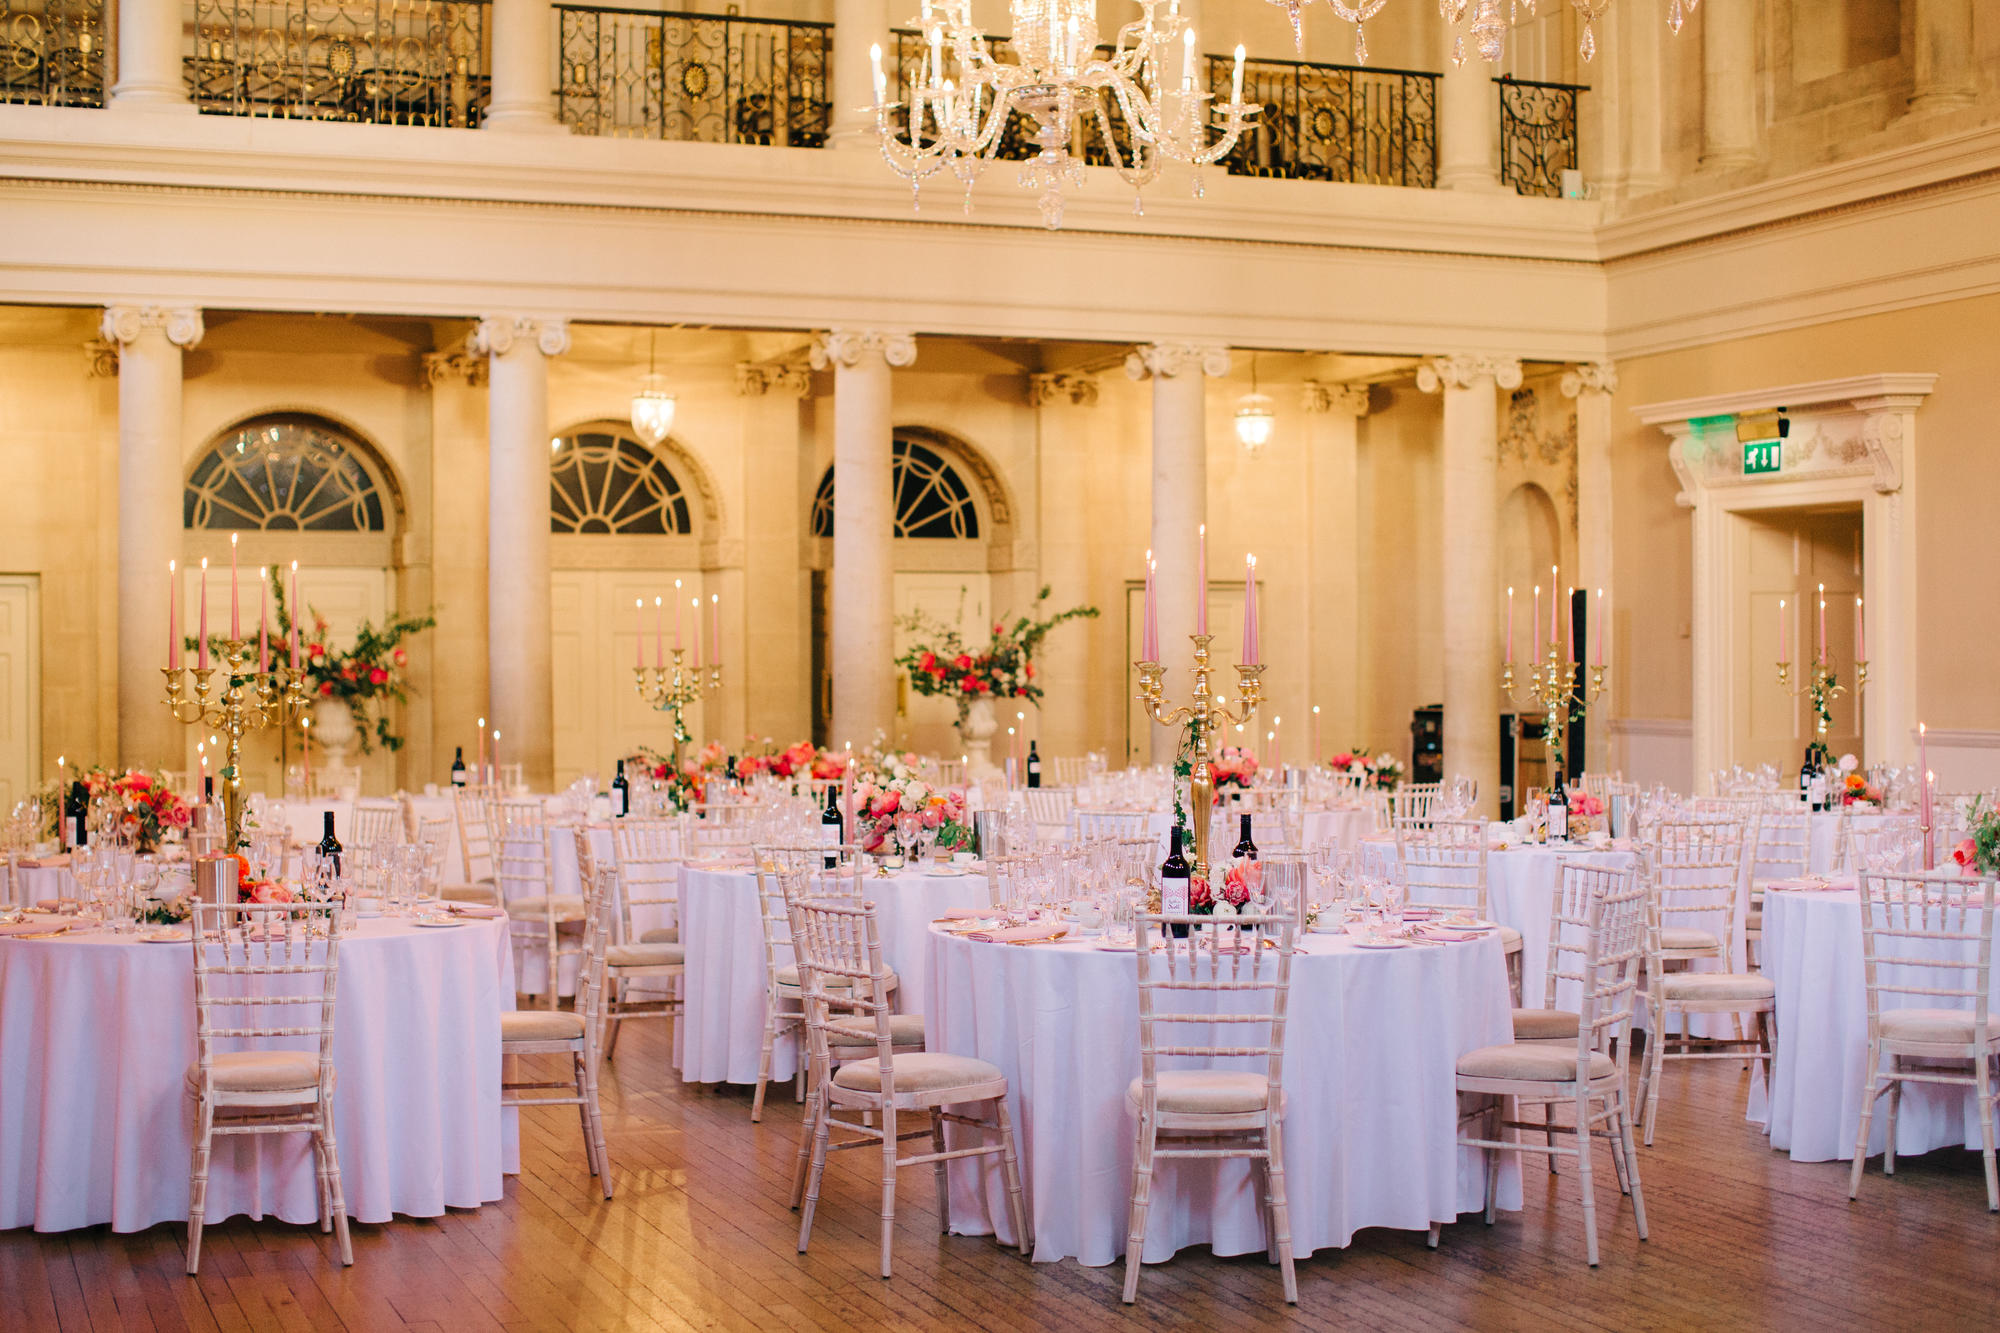 Image: Reception in the Tea Room. M&J photography